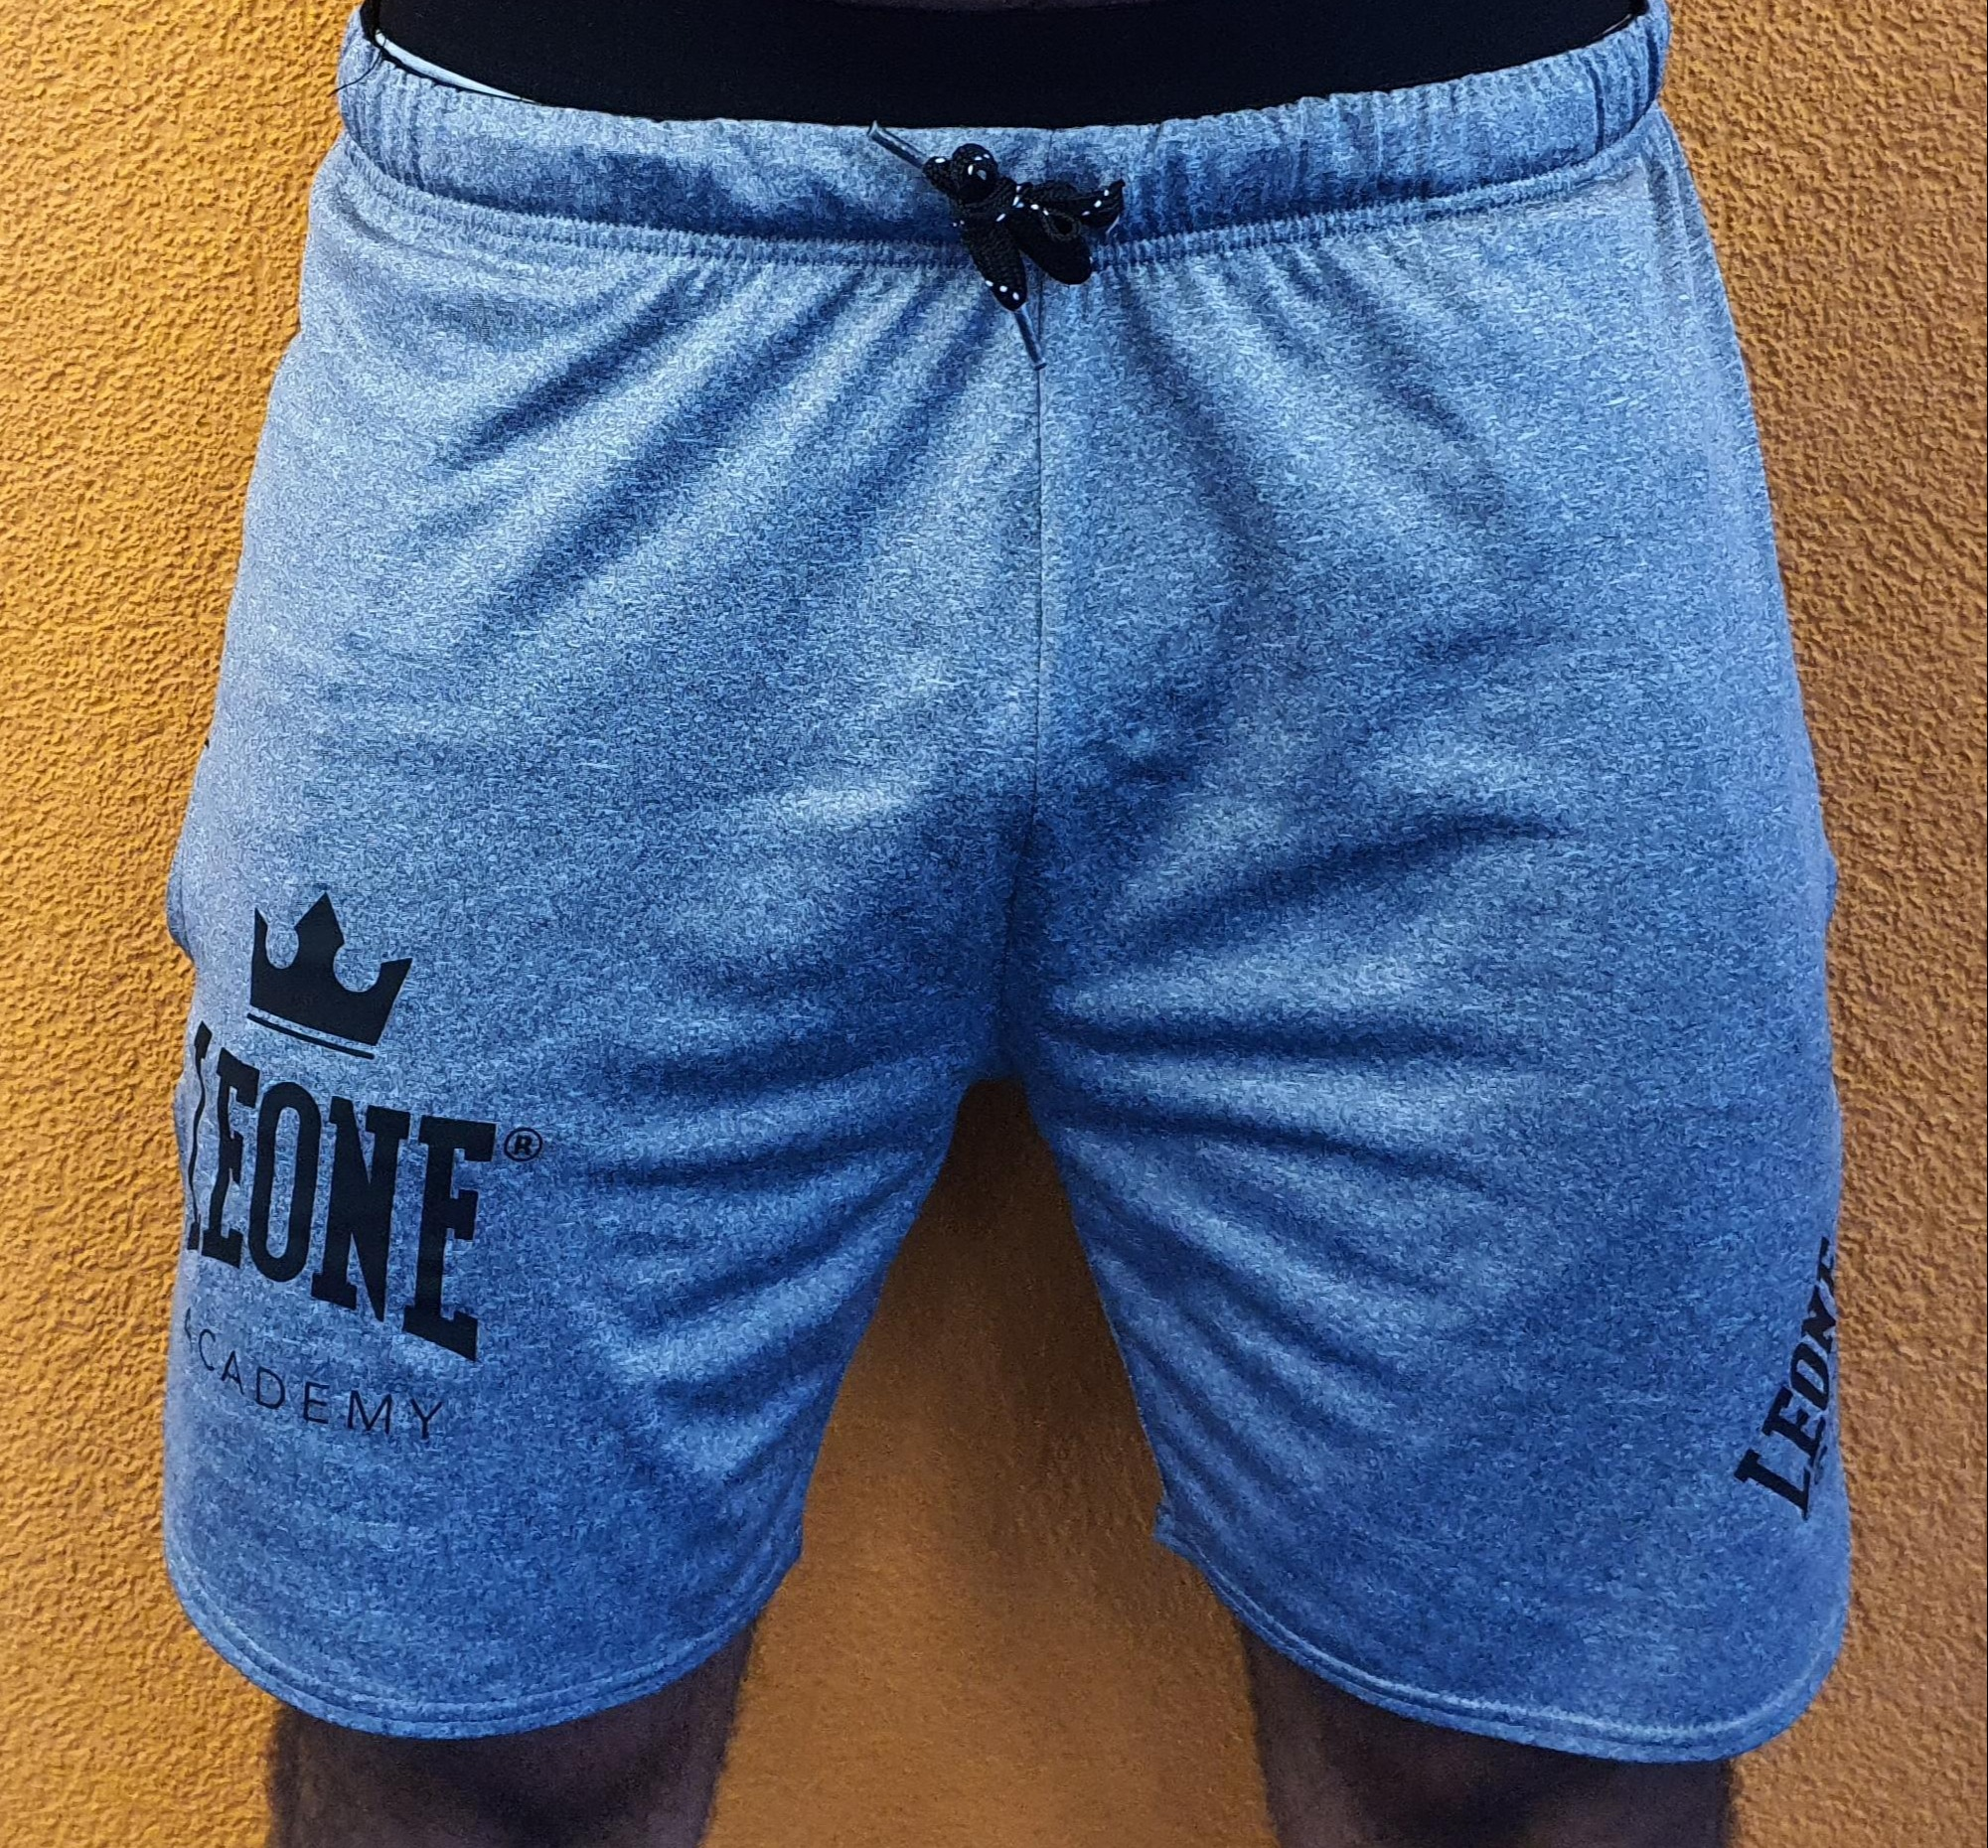 TEAM LEONE ACADEMY SHORTS